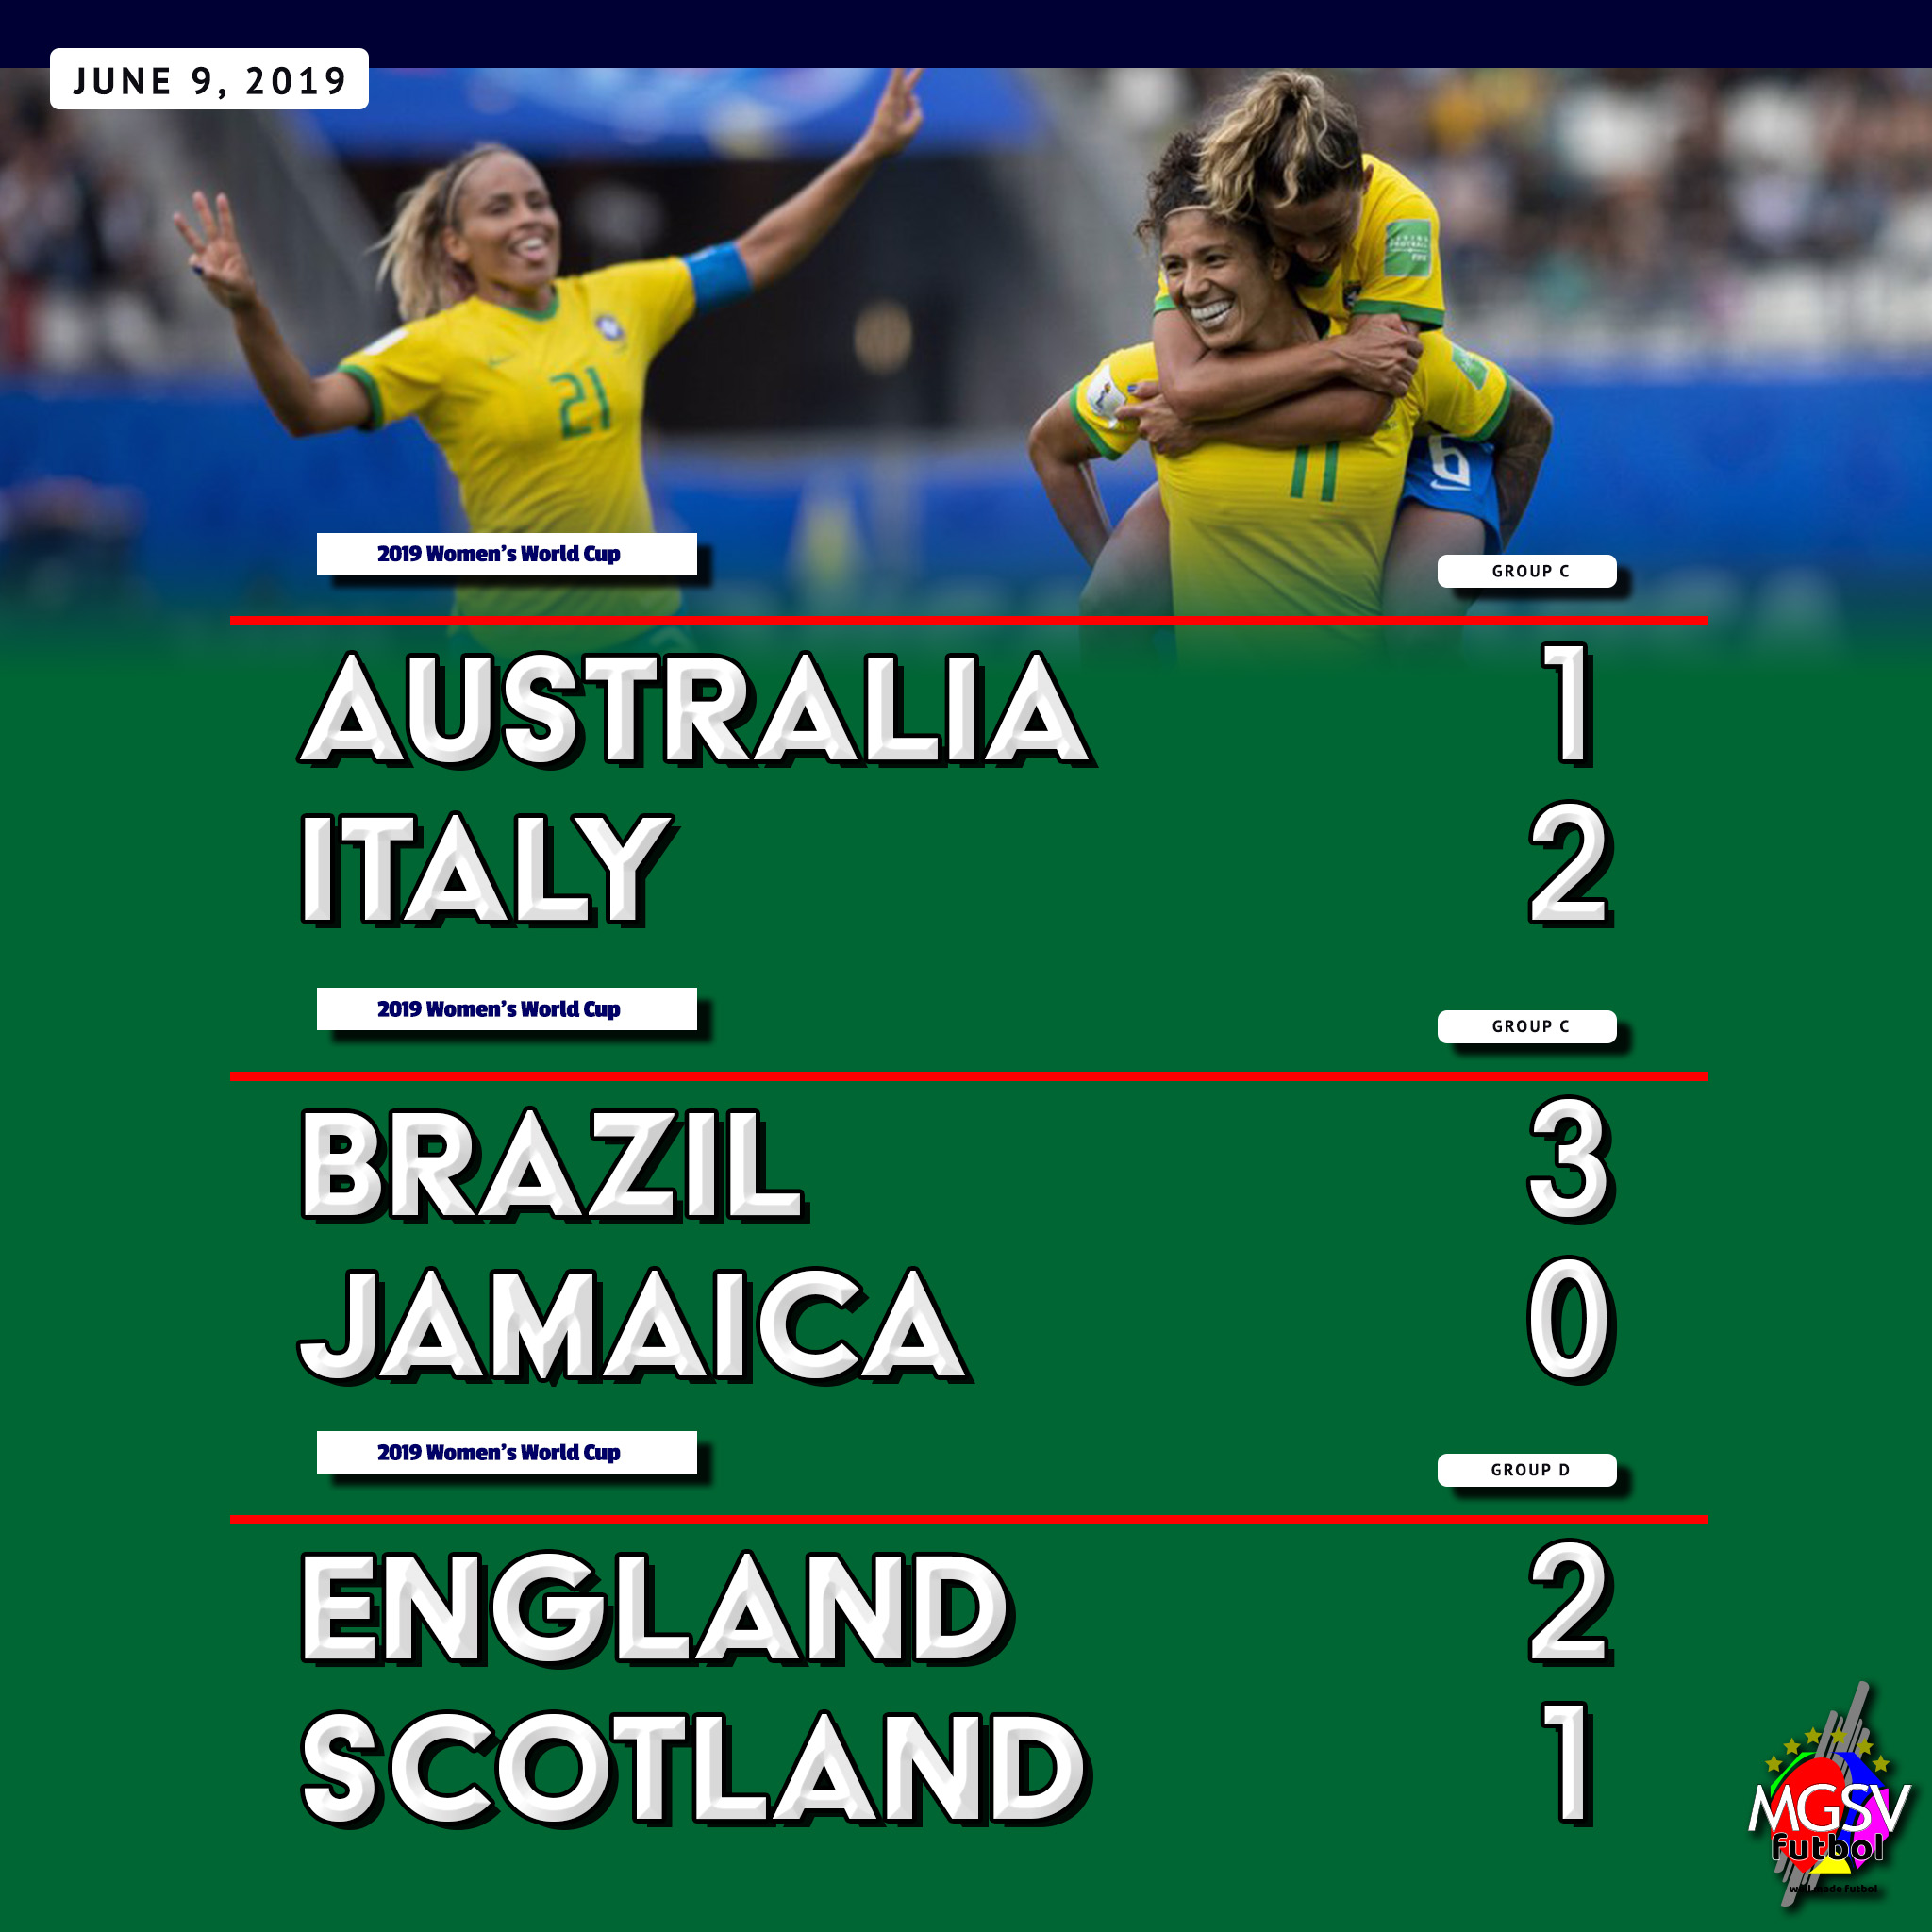 After the First round of the 2019 FIFA Women's World Cup